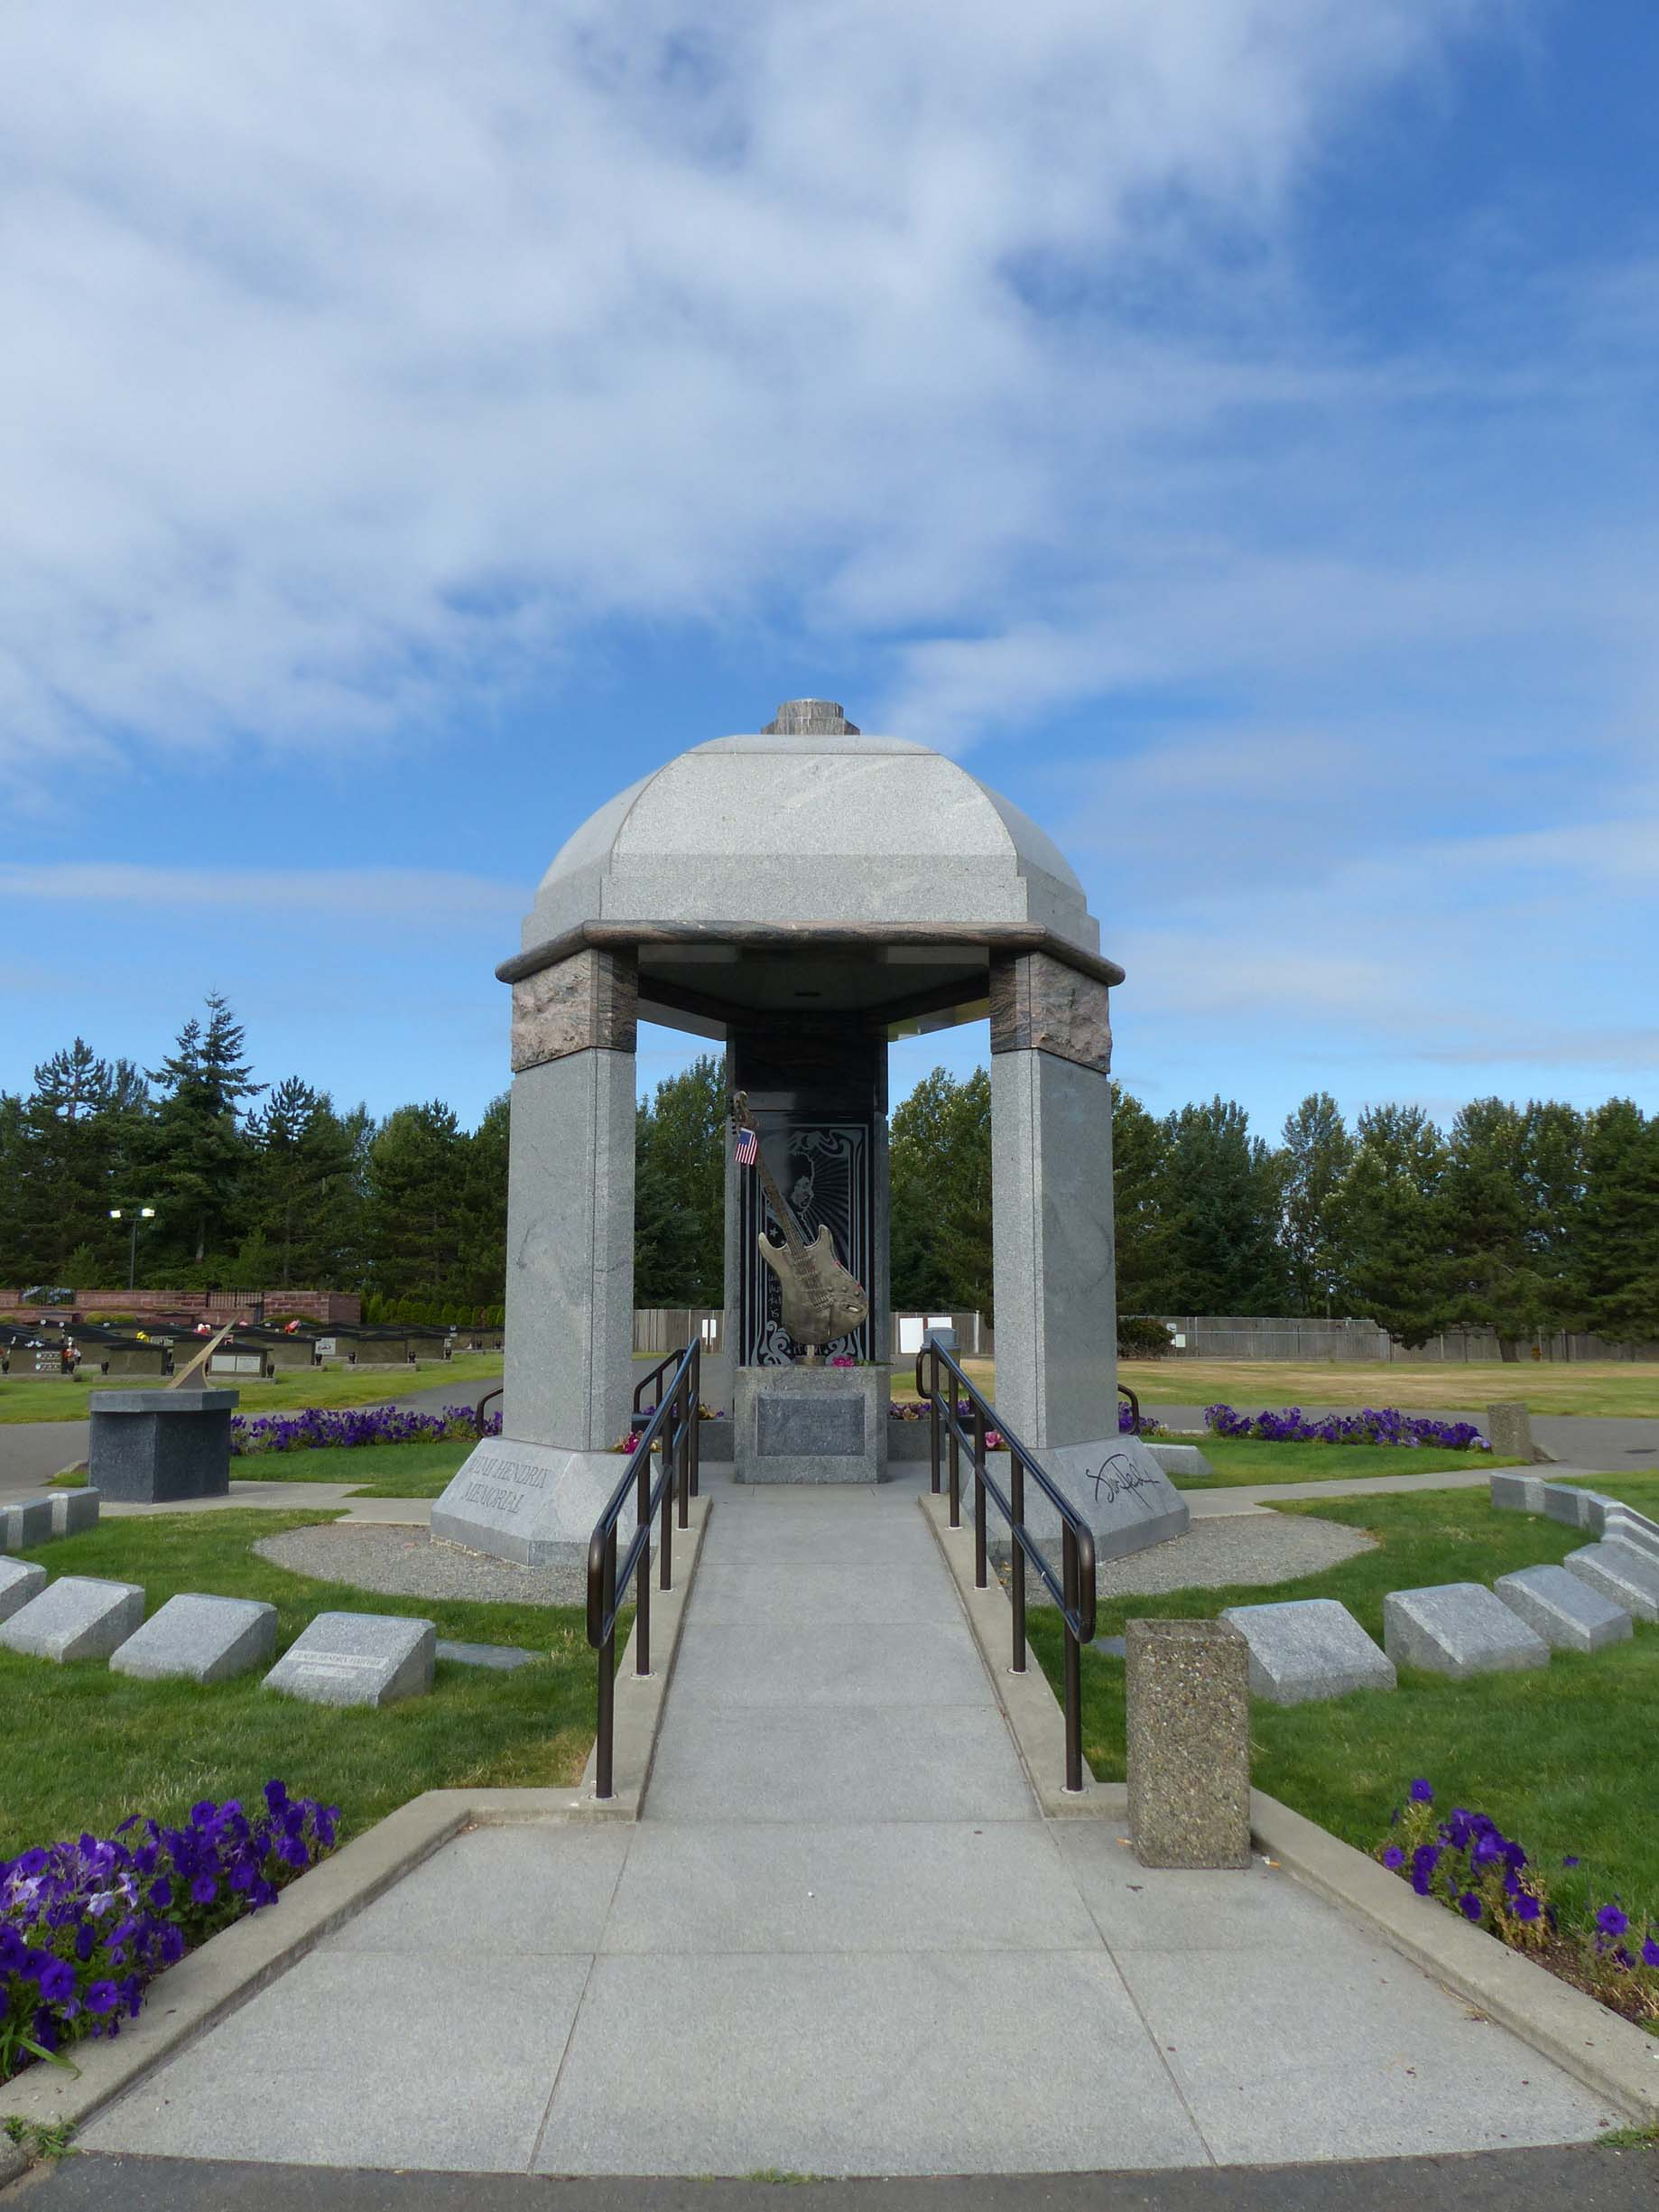 Stone memorial with flower beds